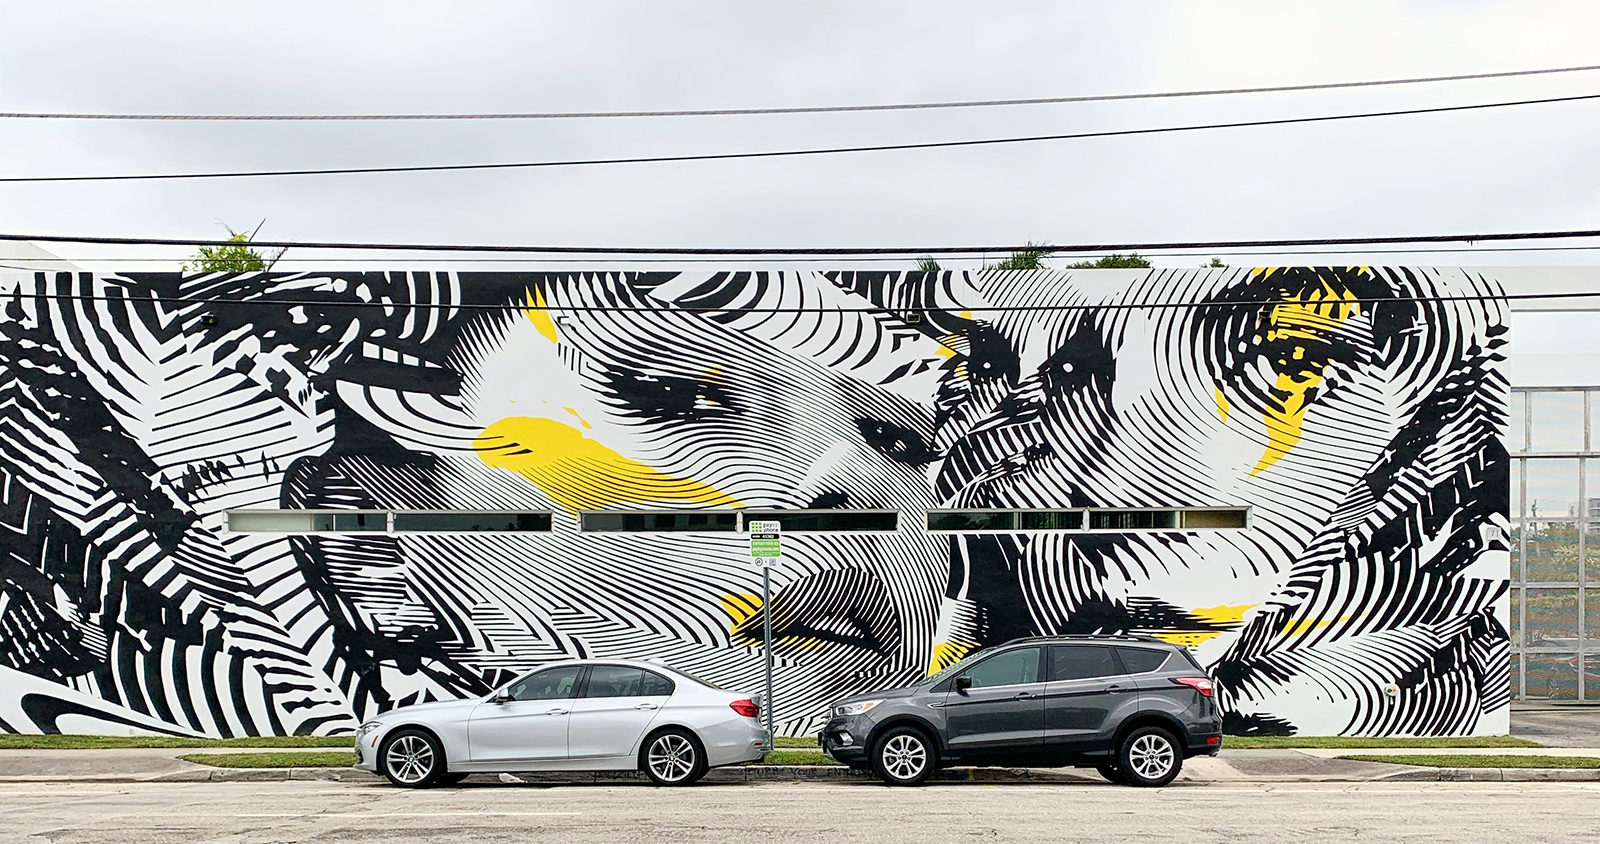 Wynwood Wall graffiti